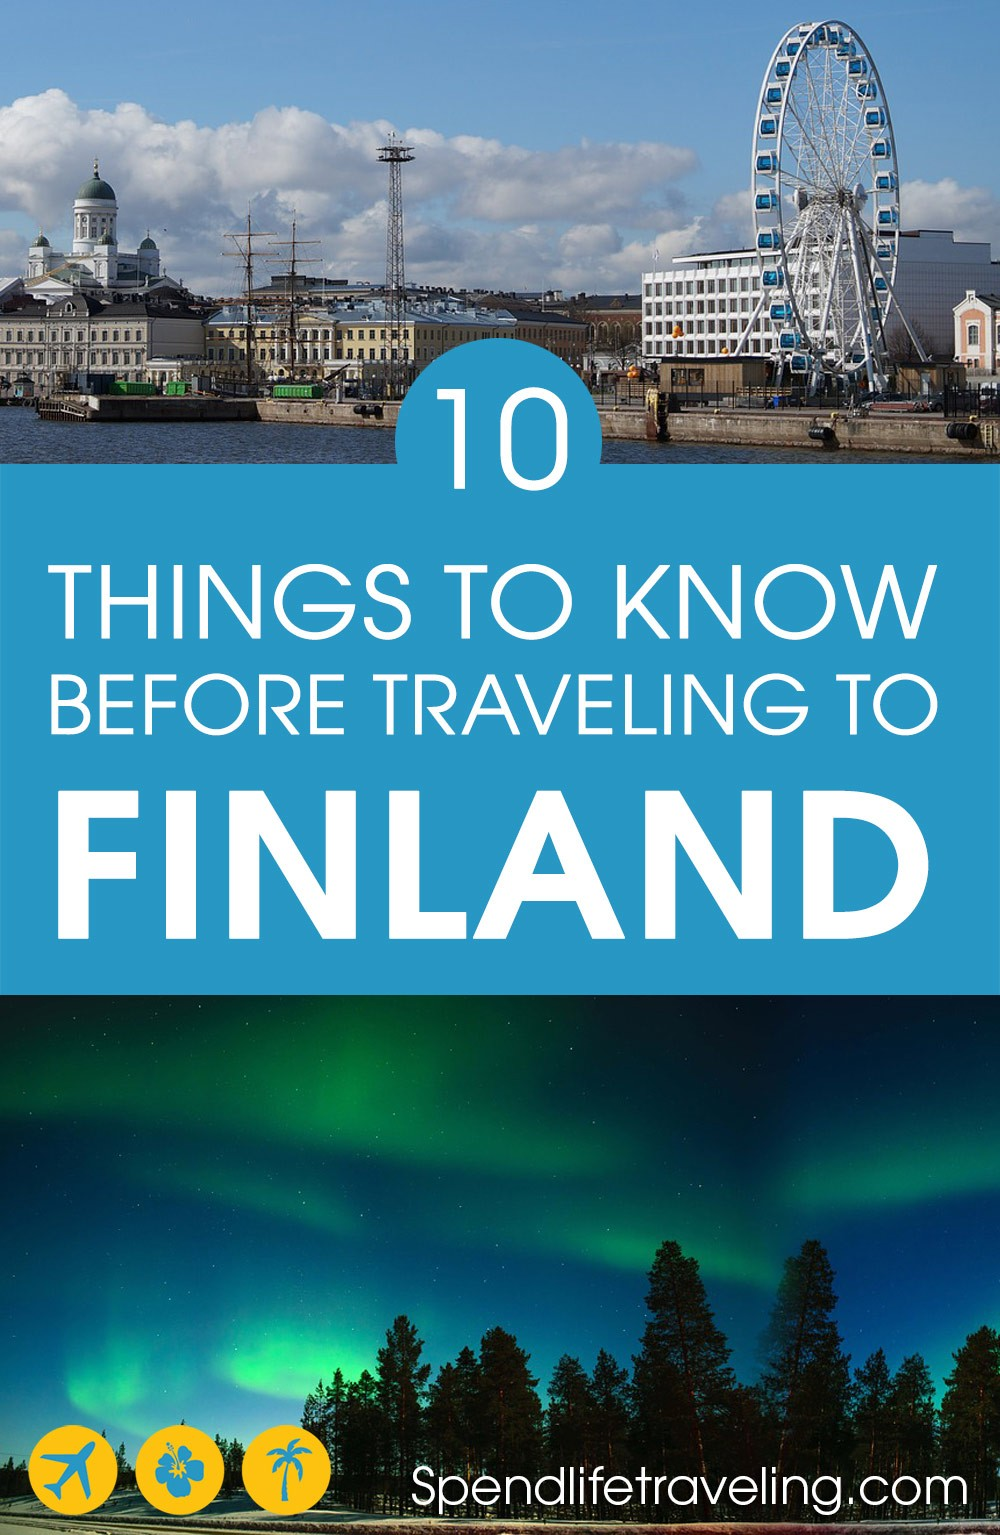 list of things to know about Finland before visiting